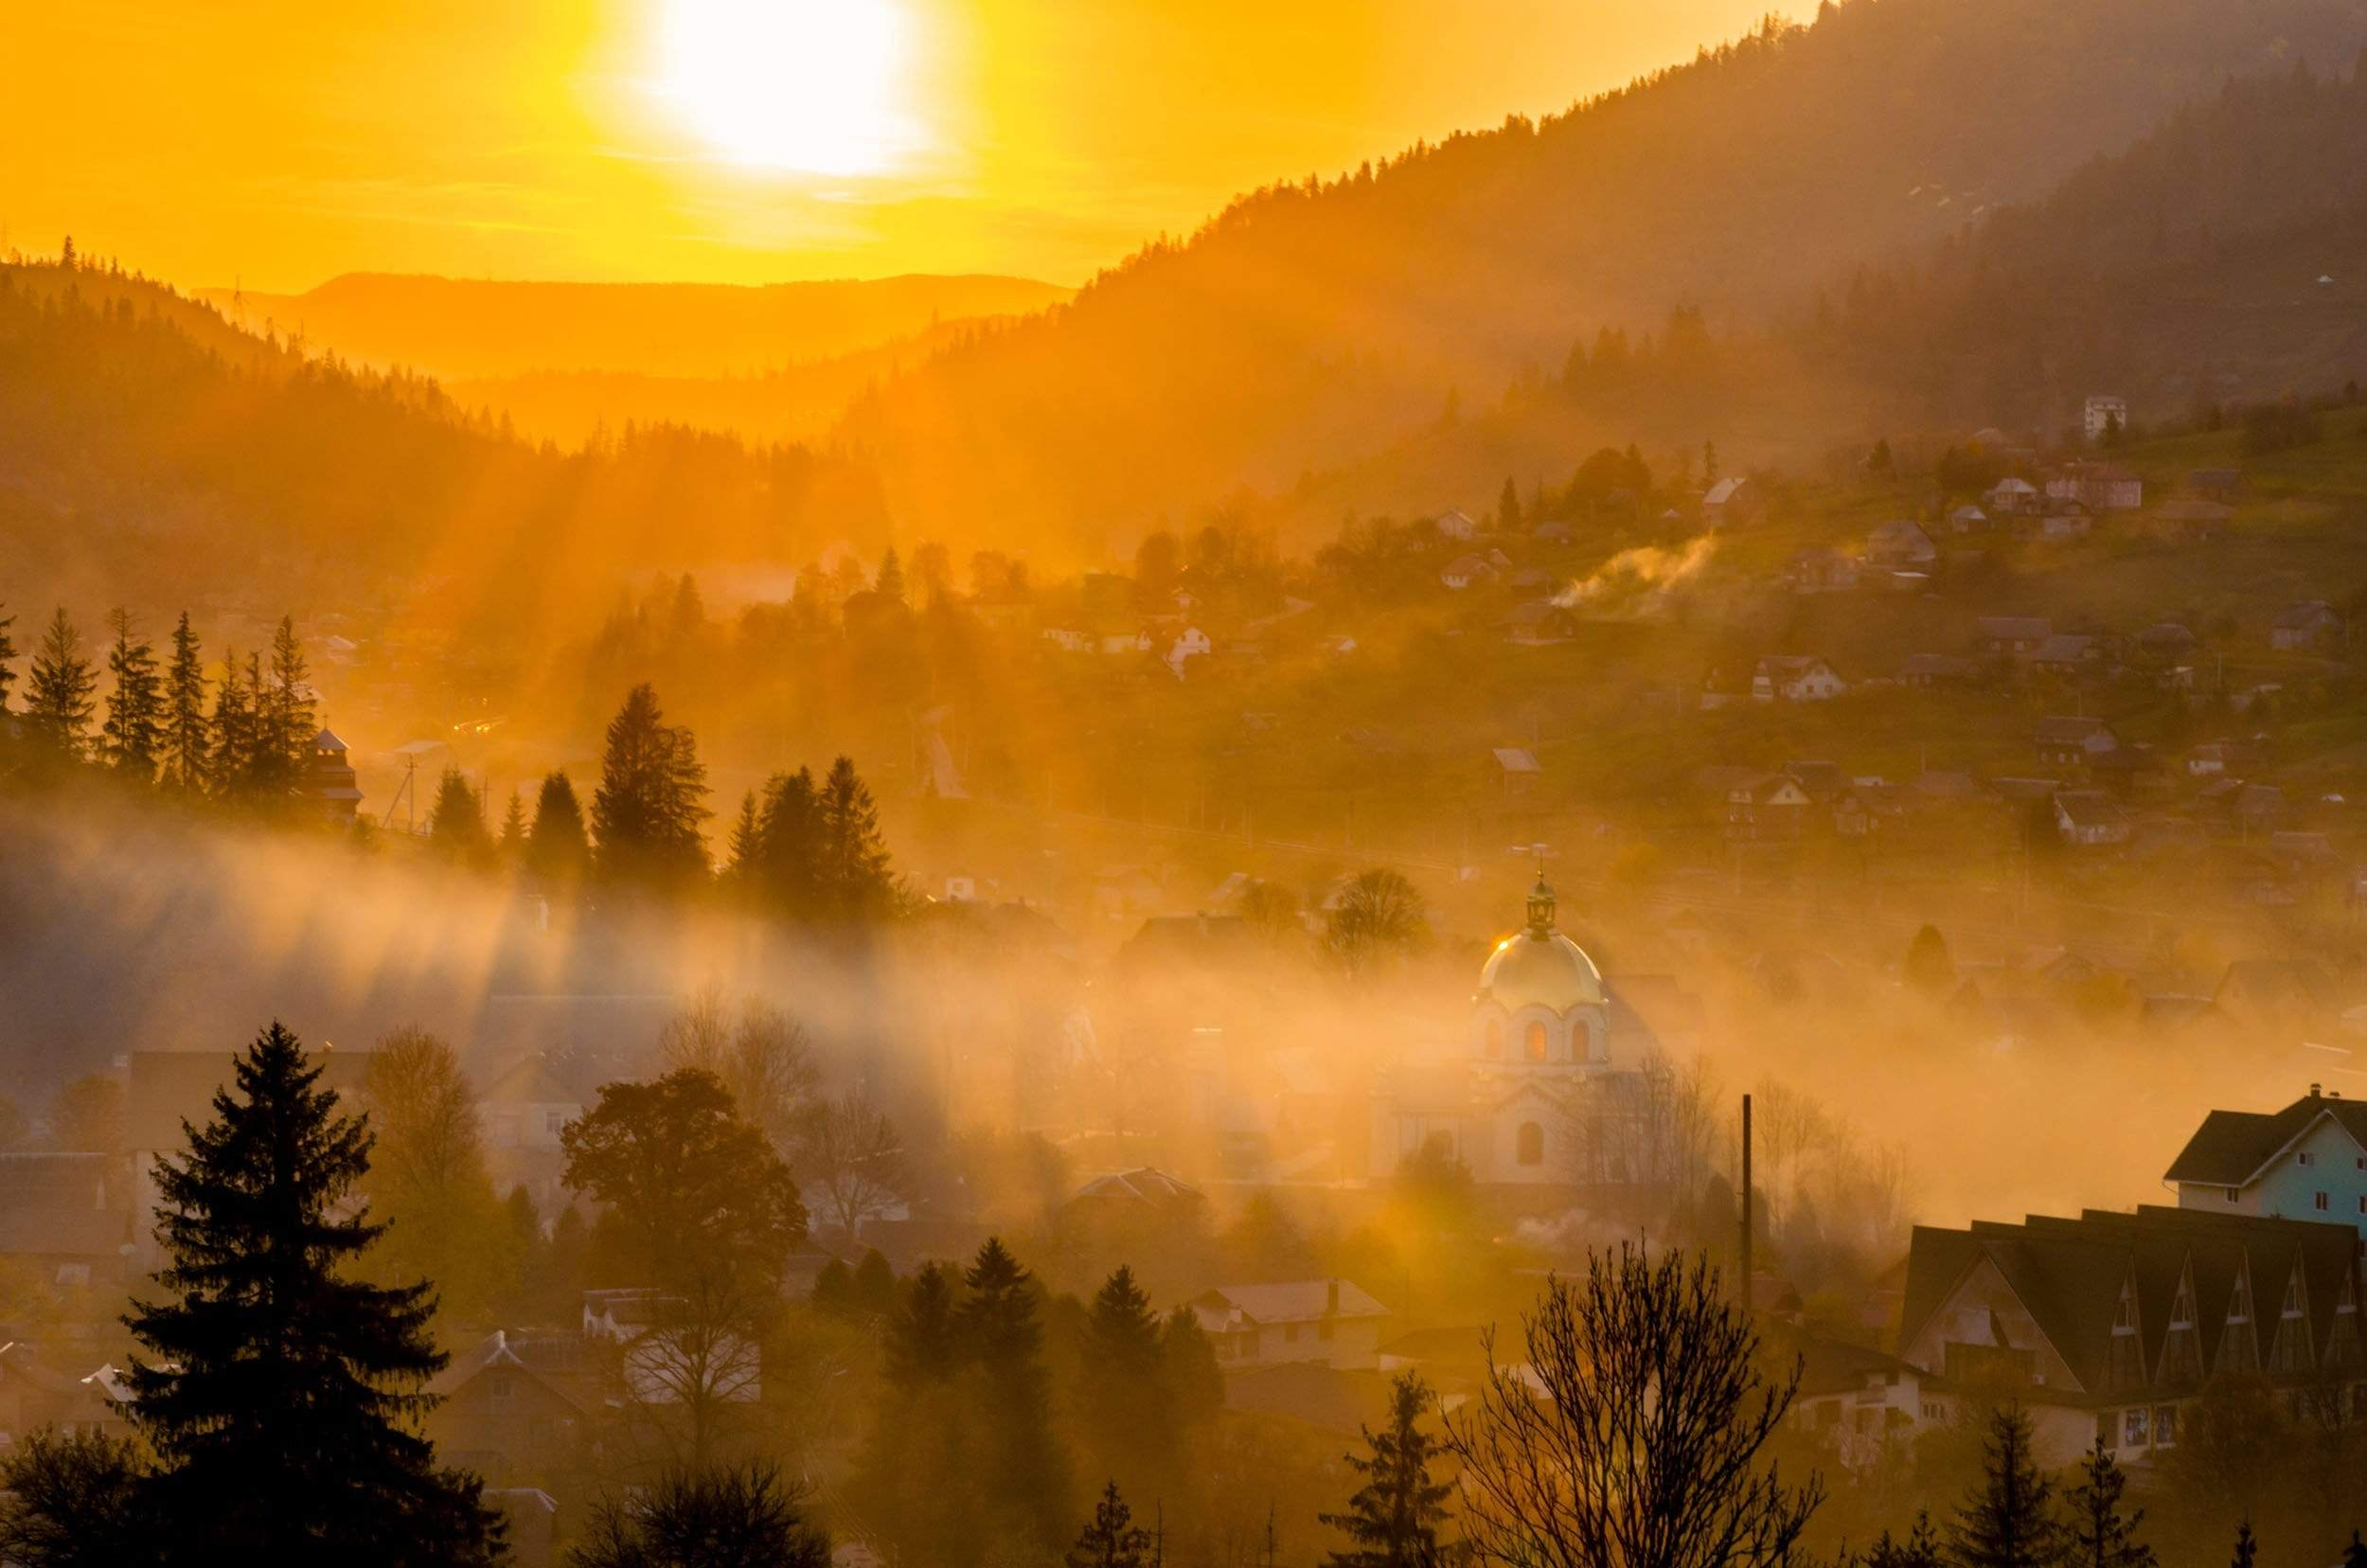 Sunset of misty small town